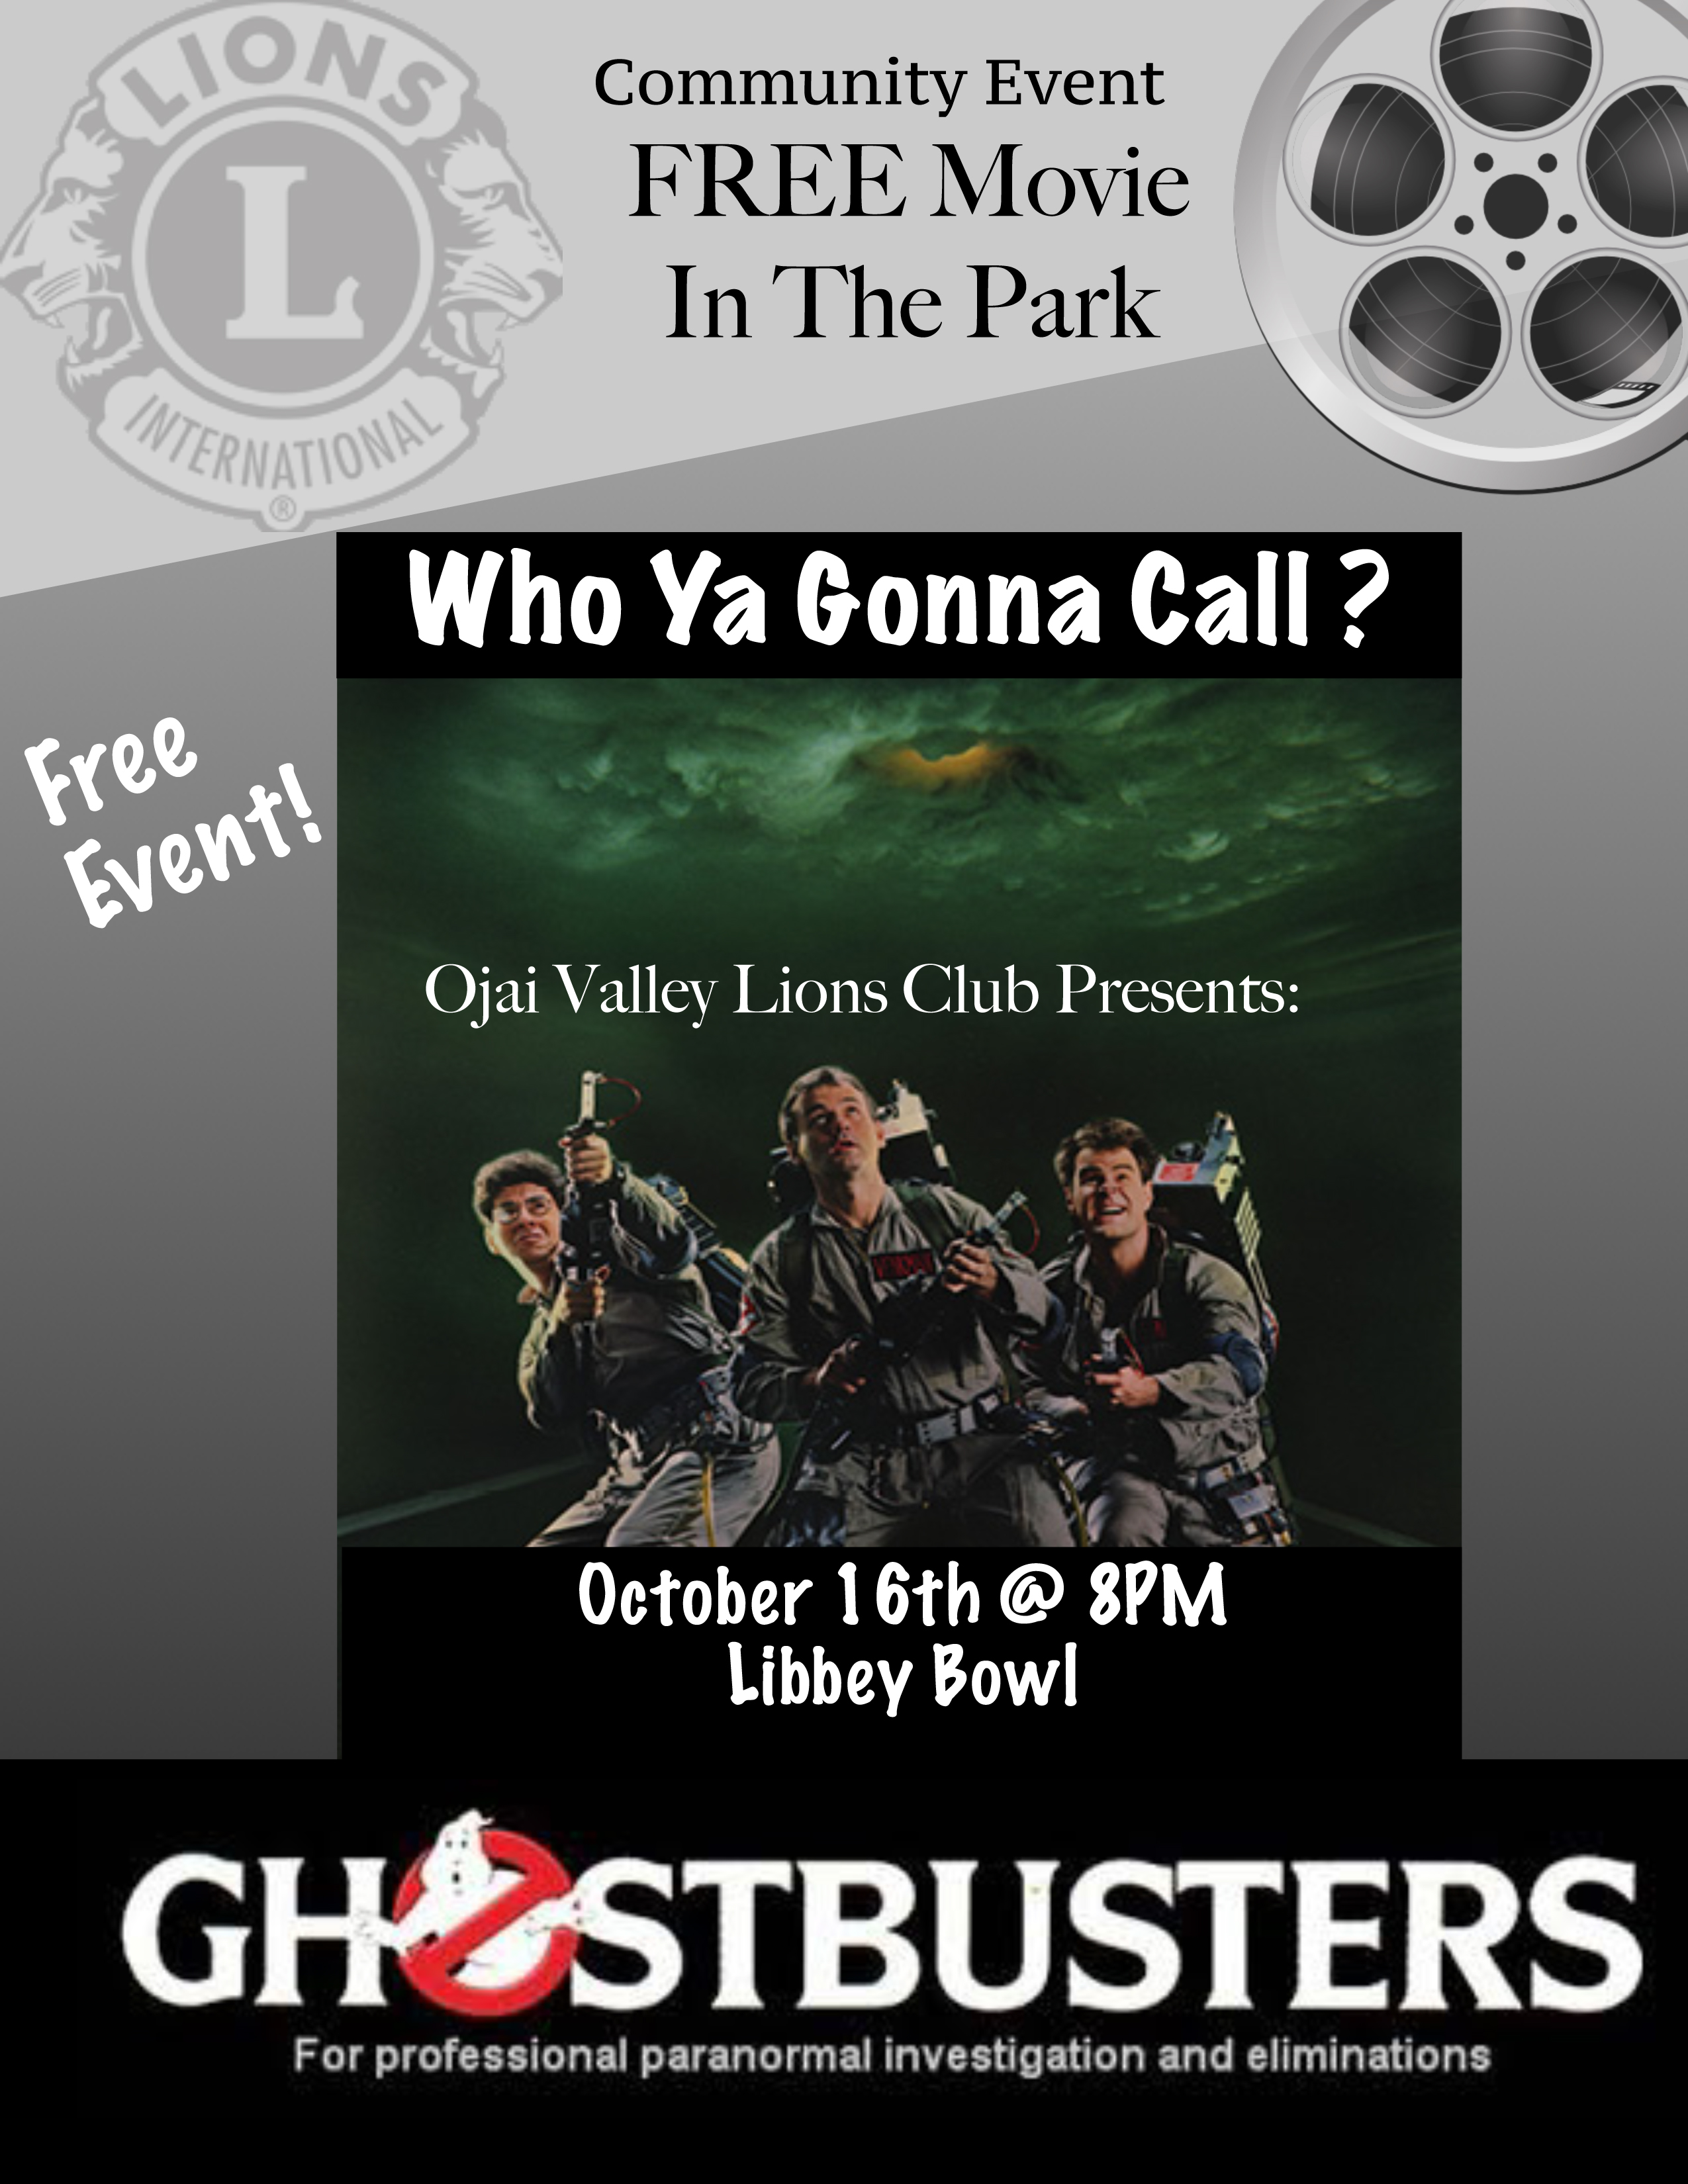 Free Movie In Libbey Park – This Friday 8pm Featuring Ghostbusters!